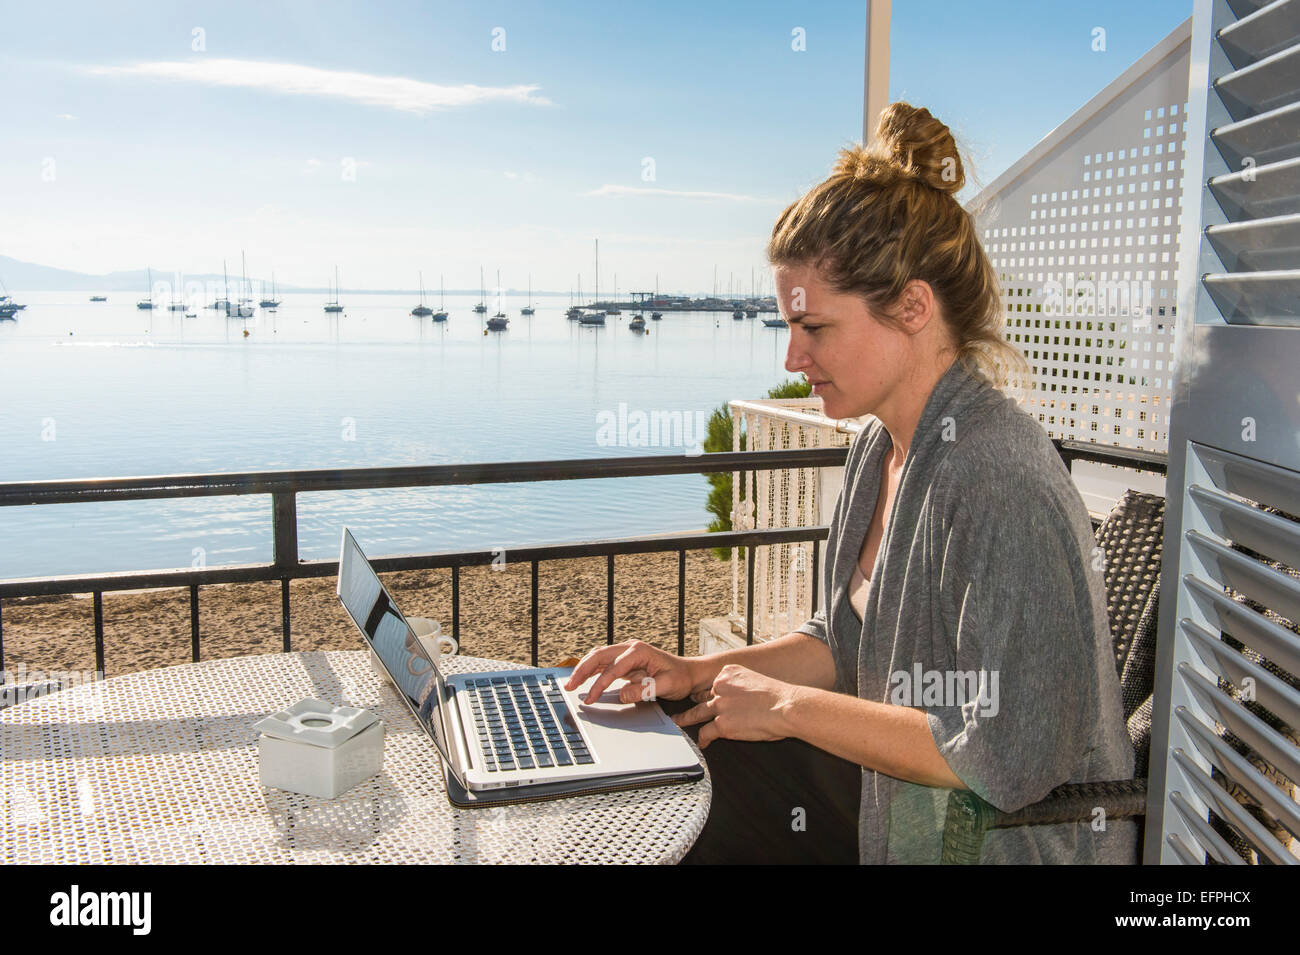 Woman working on her laptop on a balcony overlooking the ocean, Port de Pollenca, Mallorca, Balearic Islands, Spain - Stock Image